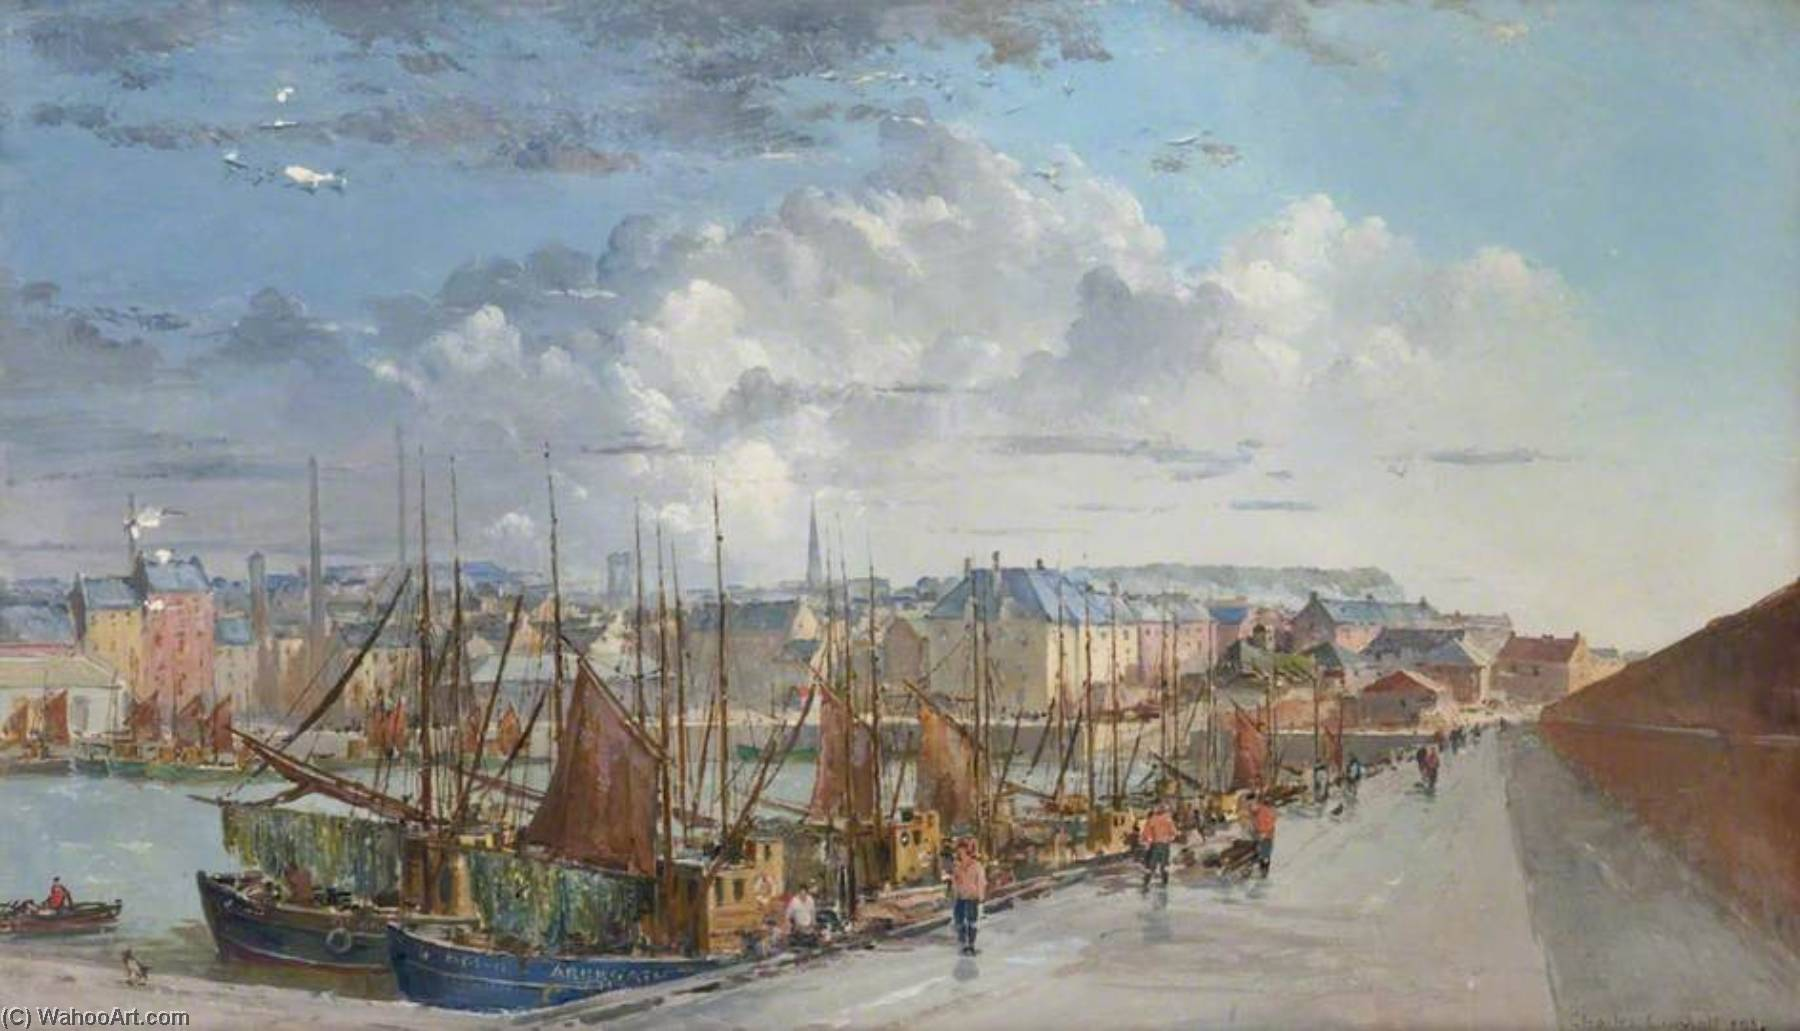 Arbroath Harbour by Charles Ernest Cundall | Famous Paintings Reproductions | WahooArt.com